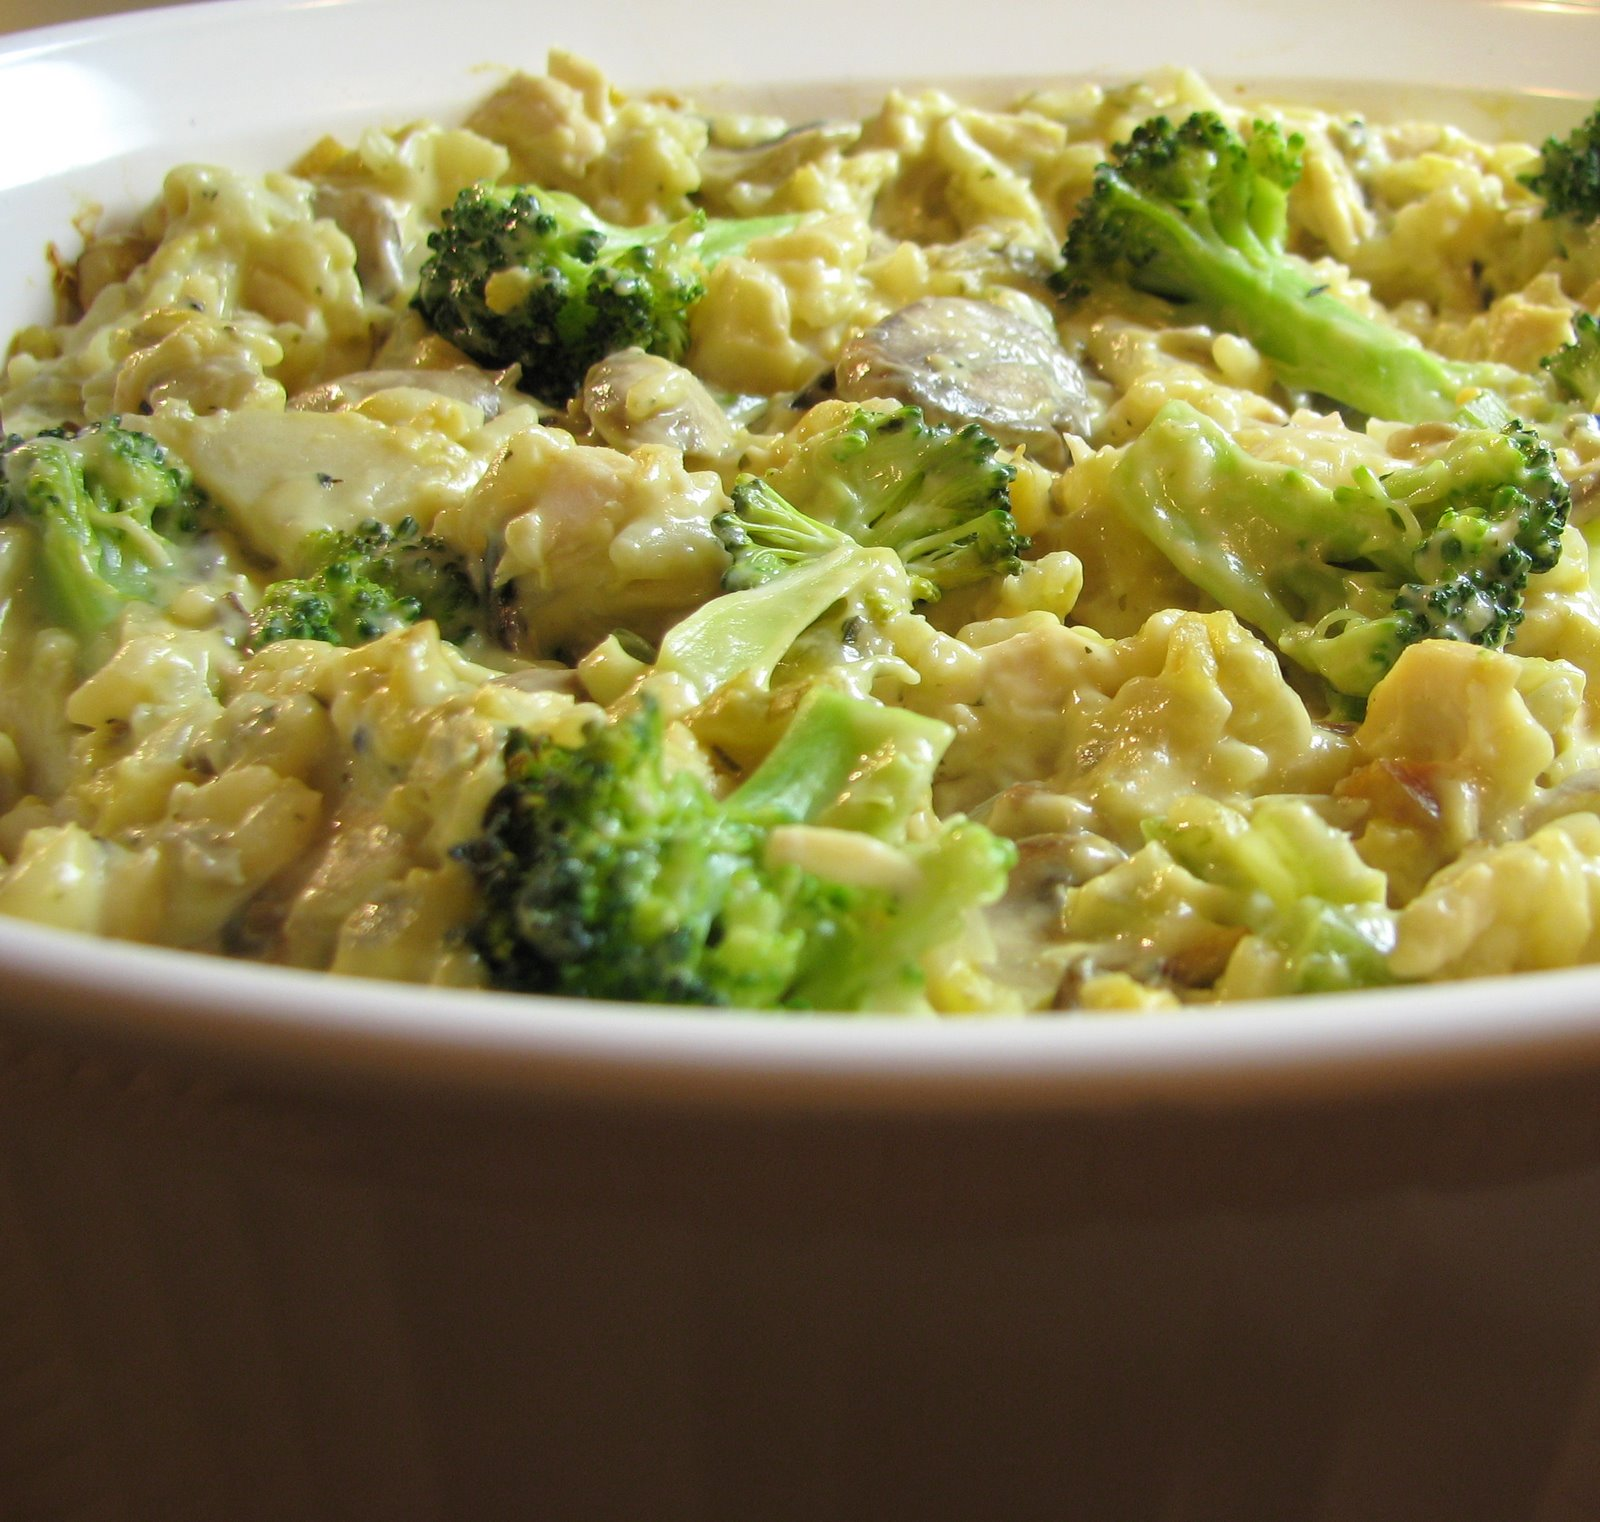 Christina's Blog Spot: Low Fat Chicken, Broccoli and Rice Casserole